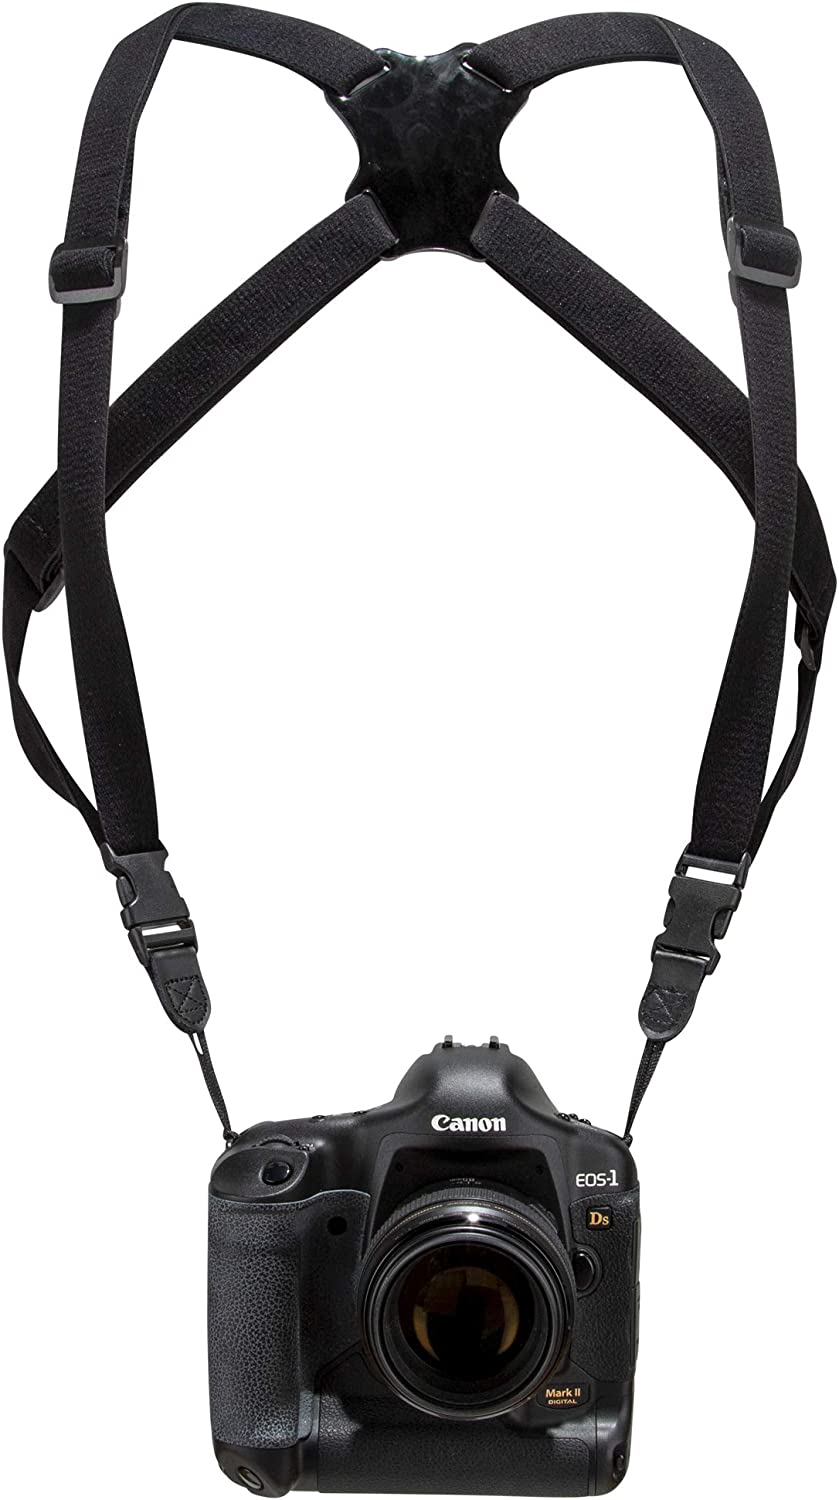 4 Way Adjustable with Quick Release Buckles North Mountain Gear Binoculars Harness DSLR Camera Harness Strap